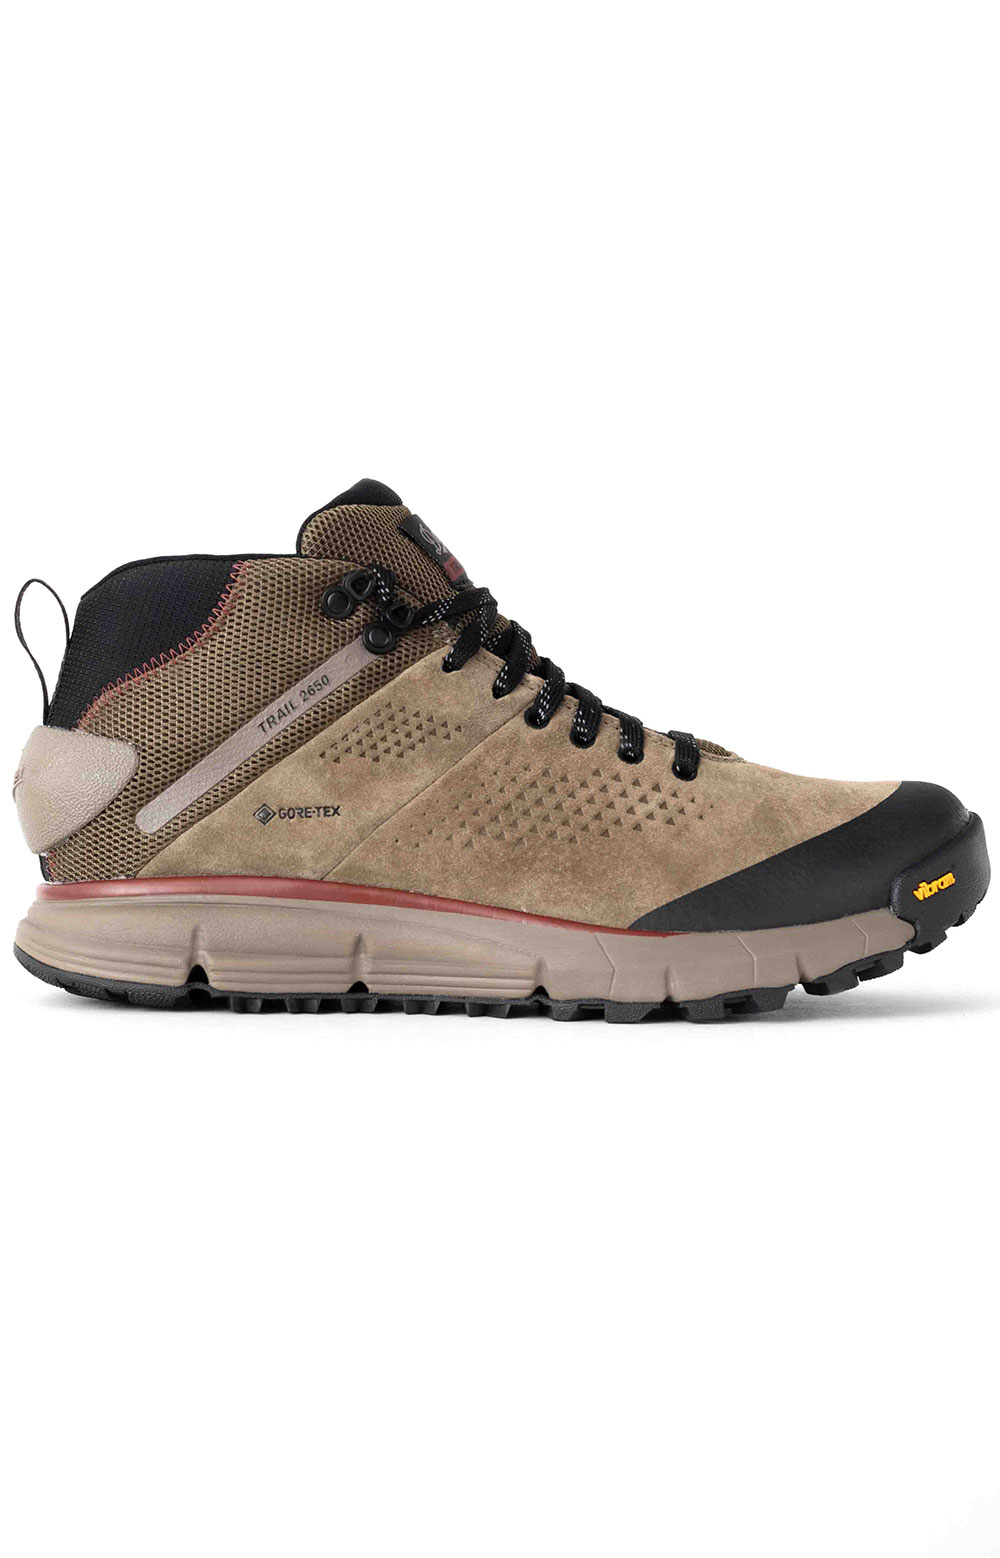 (61240) Trail 2650 GTX Mid Boots - Dusty Olive